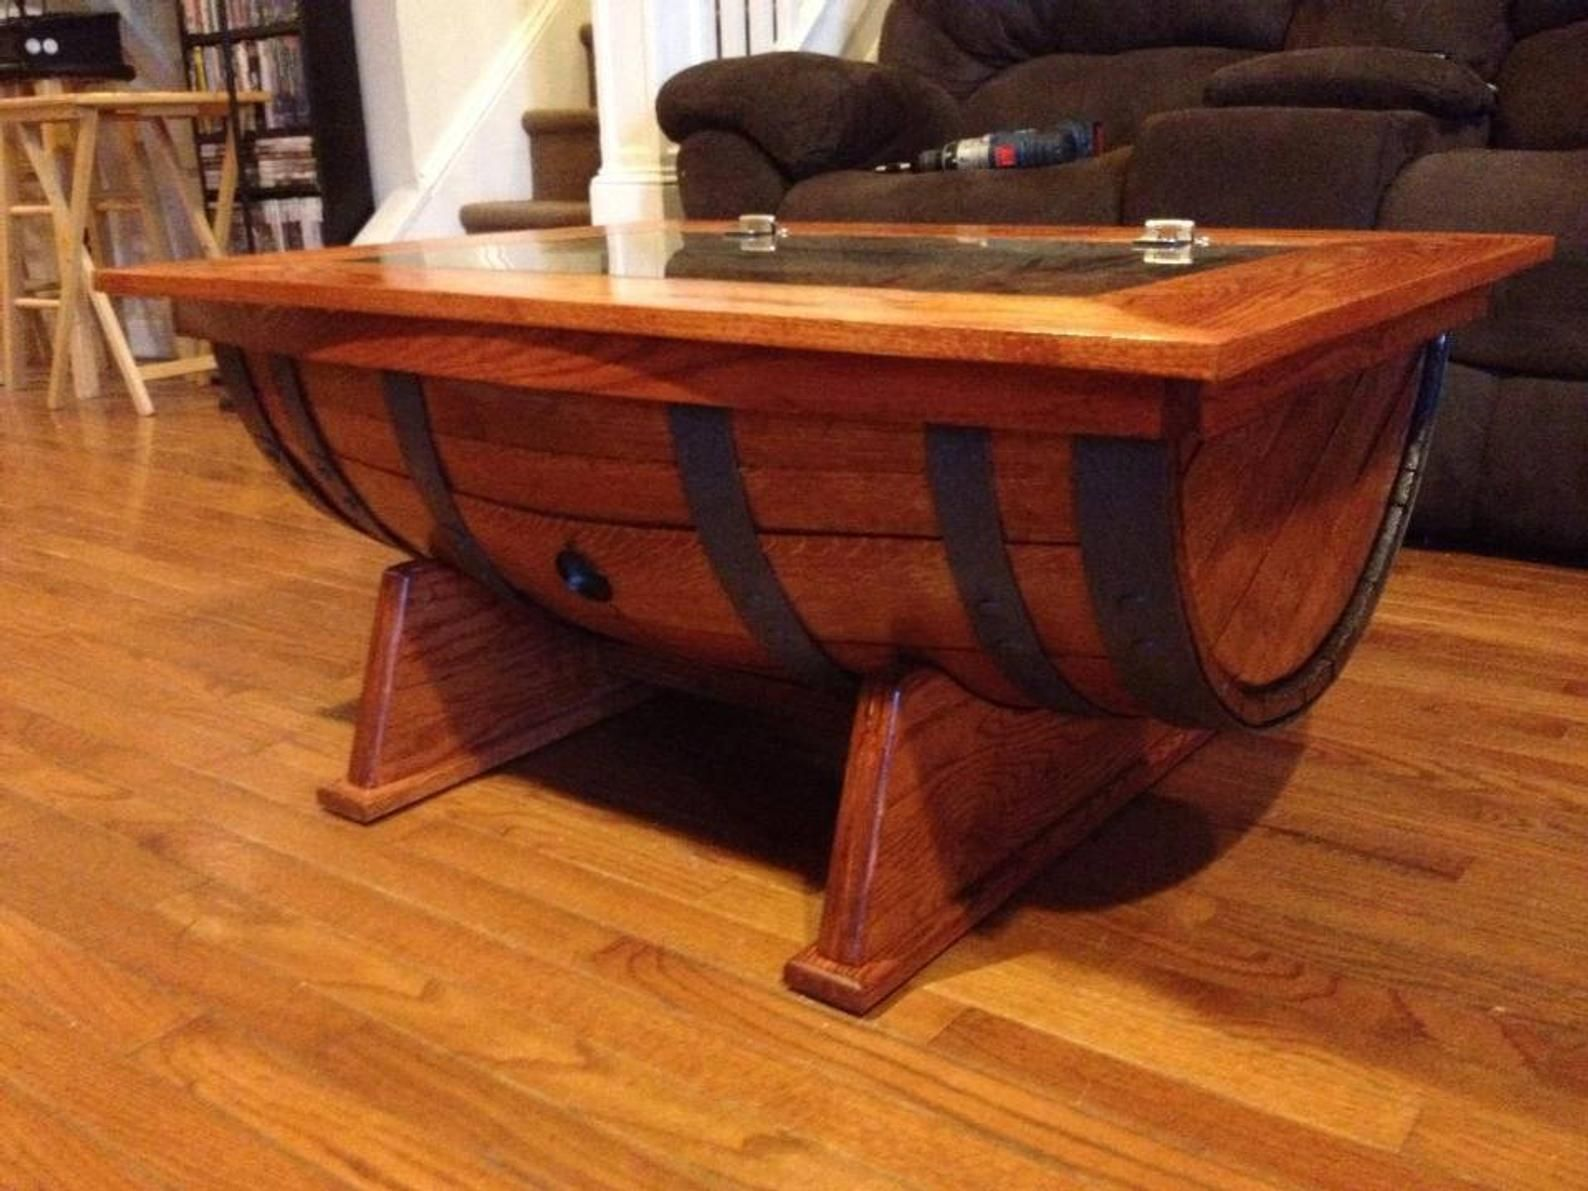 40+ Wine barrel coffee table plans inspirations